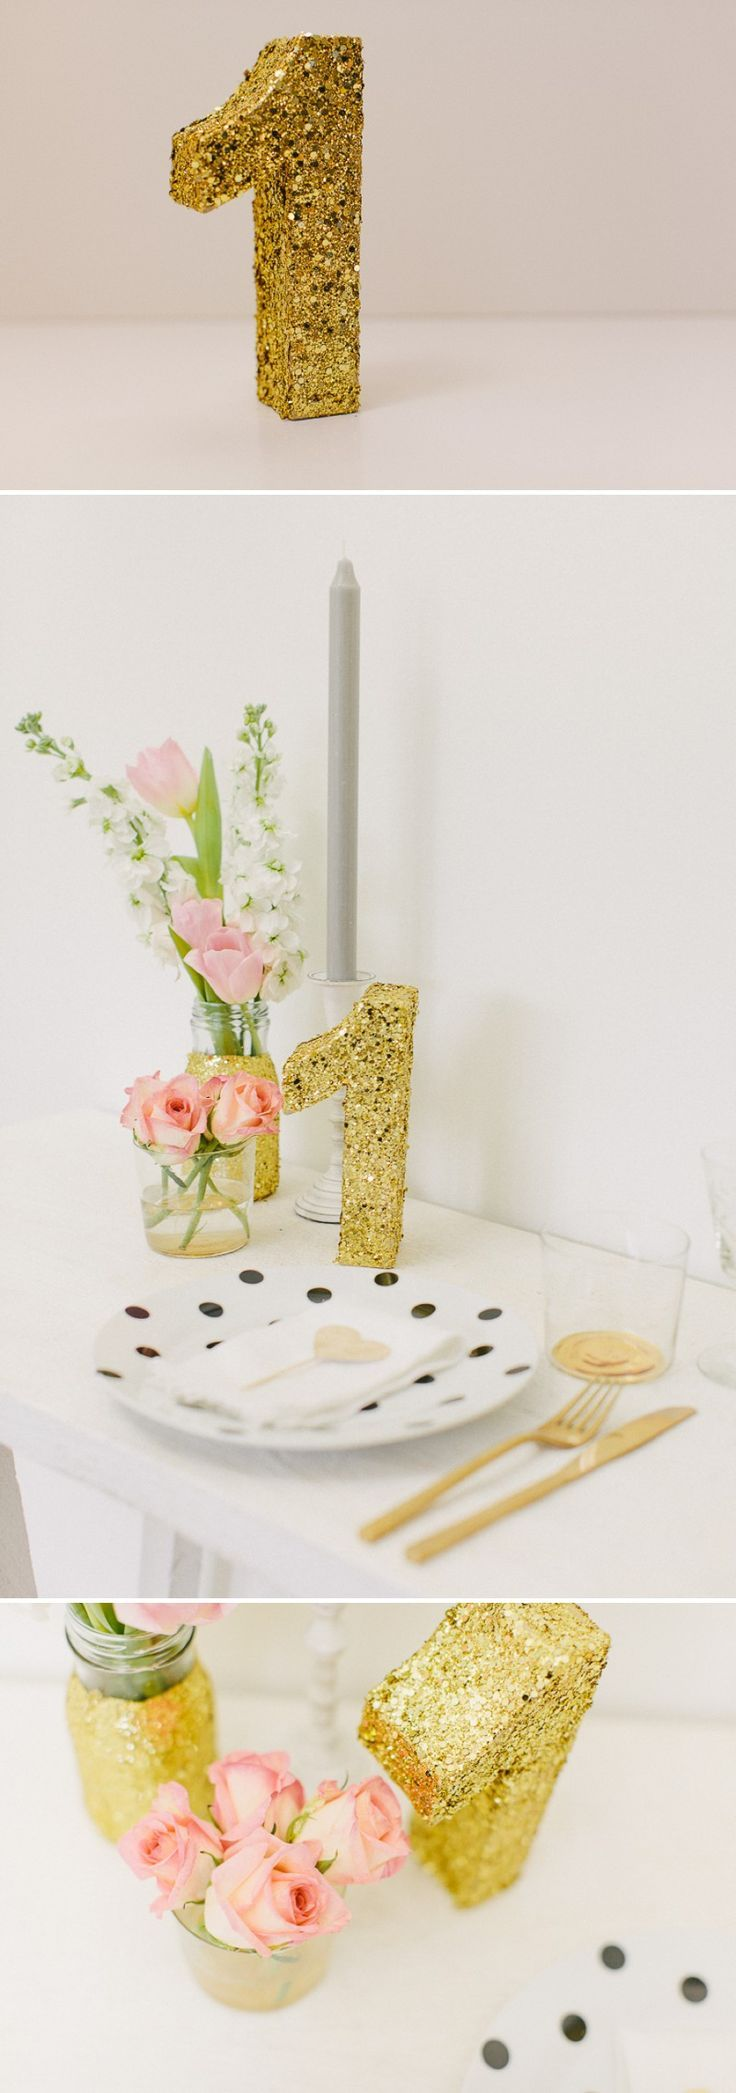 How to create a golden glittery table number for your wedding table settings and table plans._0005